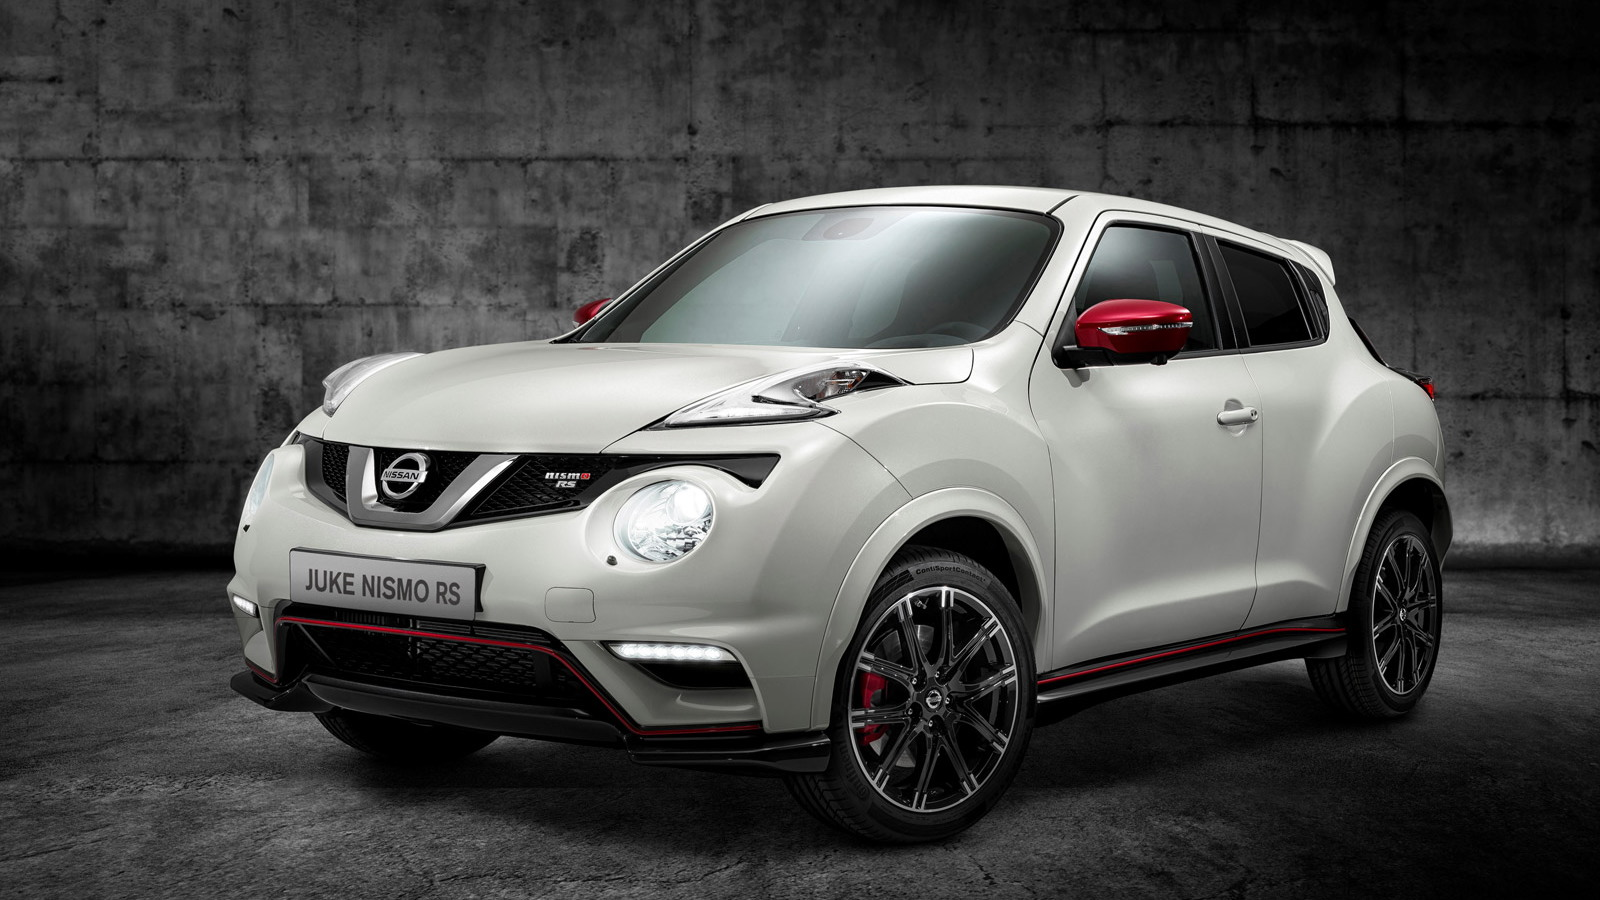 2015 Nissan Juke Priced From 21 075 Juke Nismo Rs From 28 845